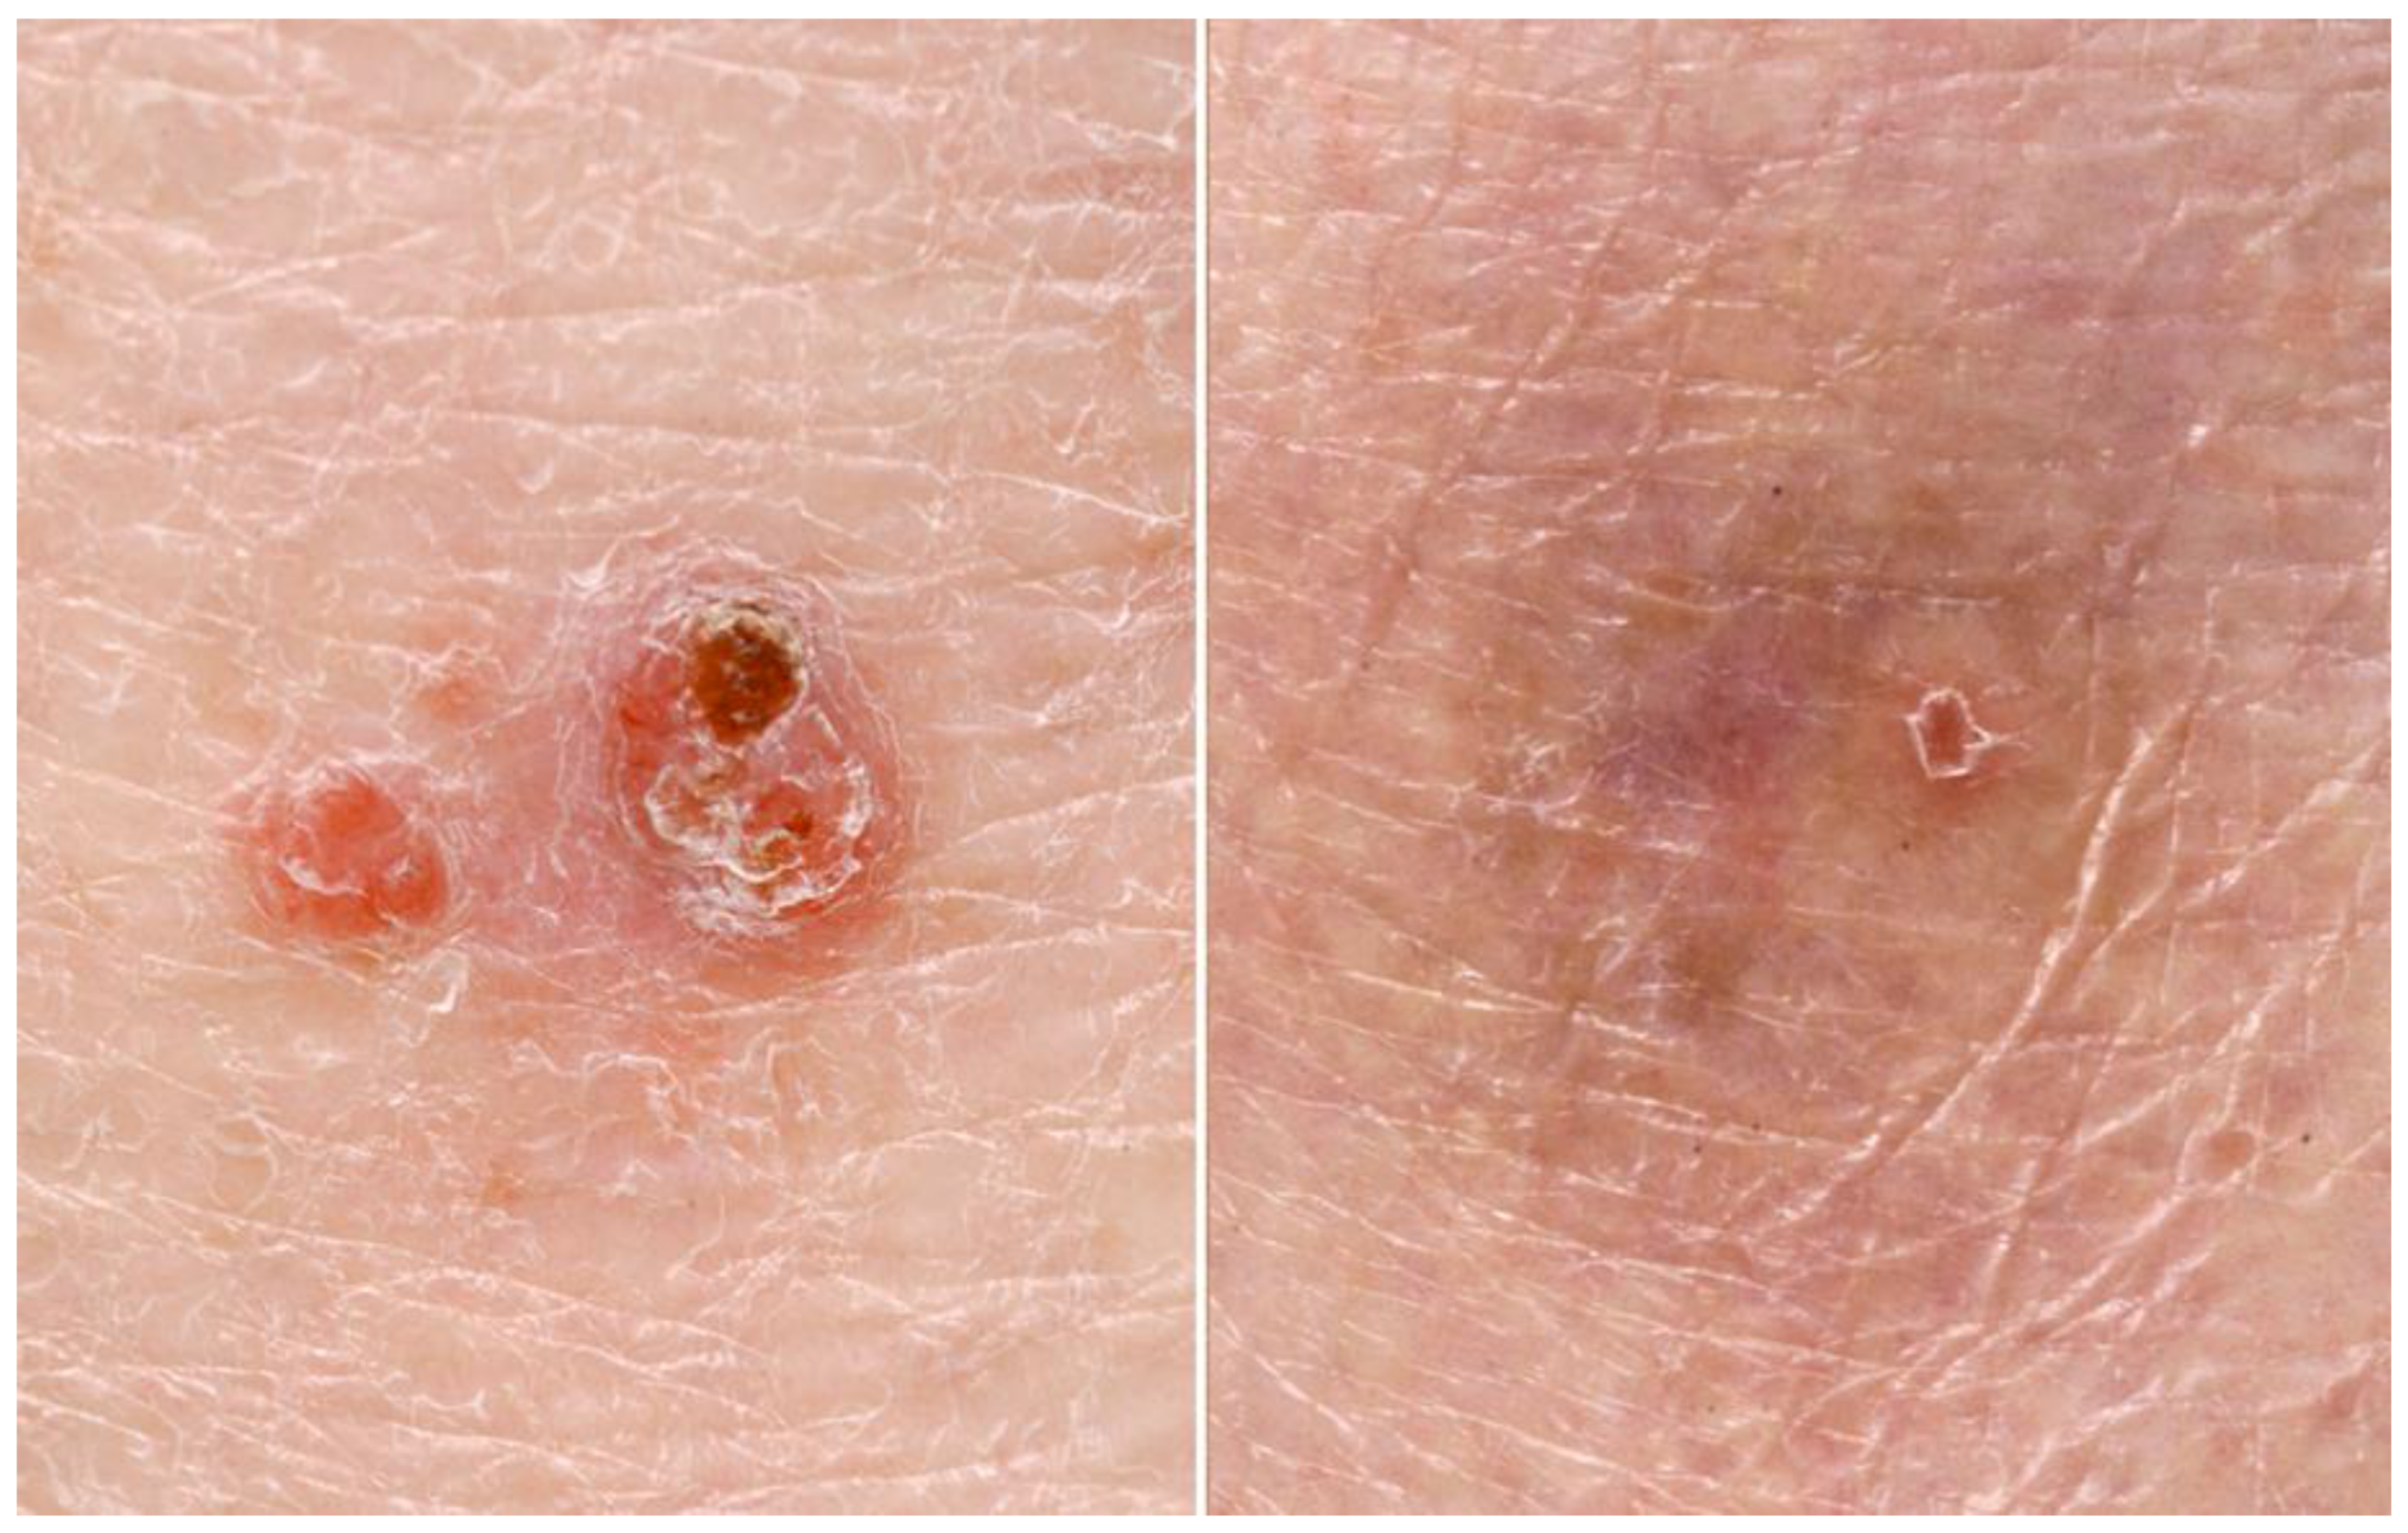 Cancers | Free Full-Text | Photodynamic Therapy and Non-Melanoma Skin Cancer  | HTML